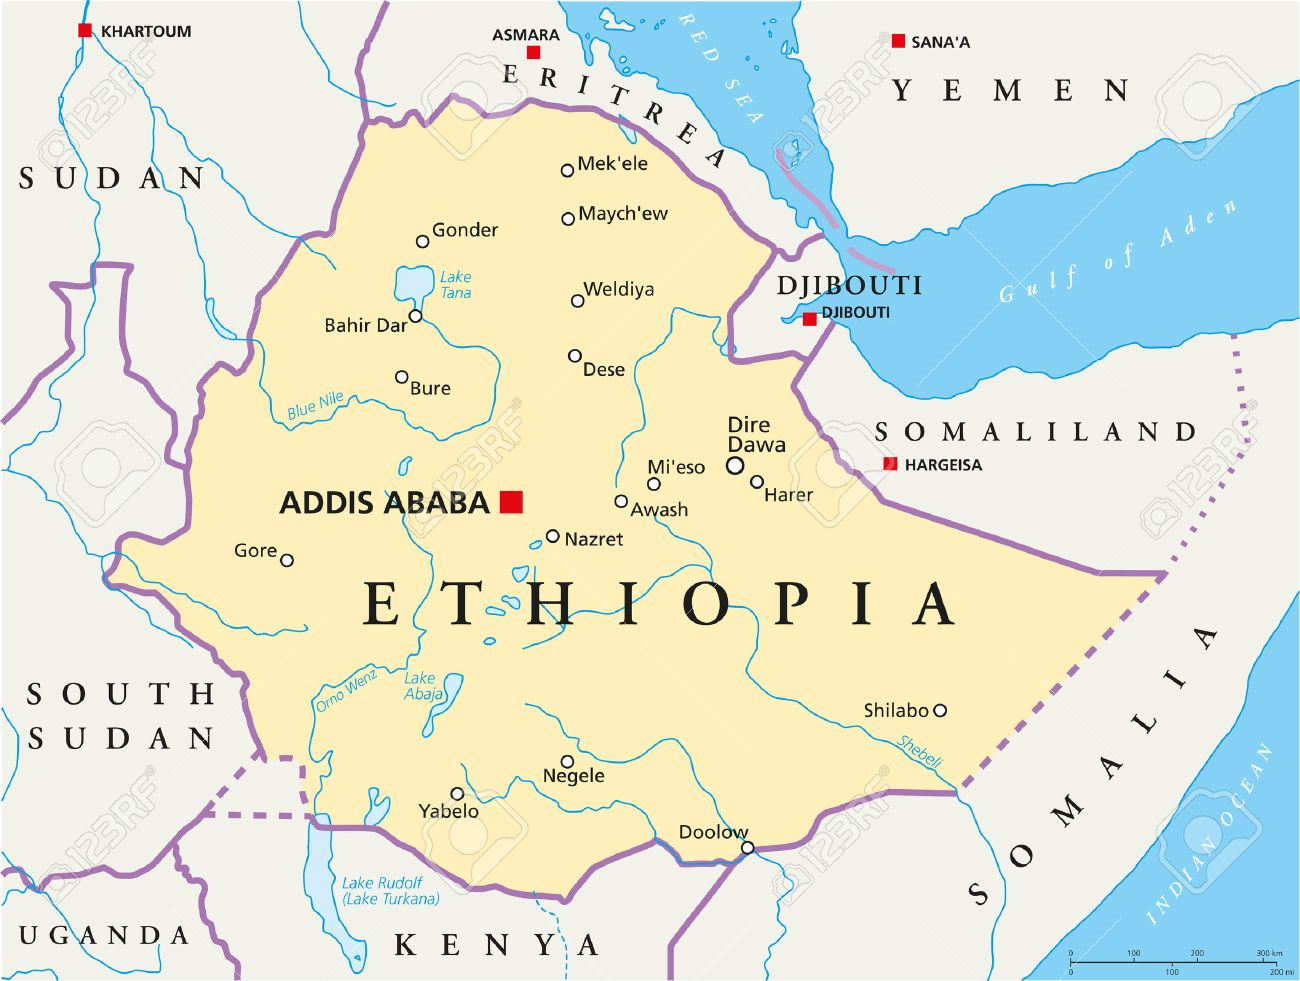 Ethiopia Political Map With Capital Addis Ababa, National Borders ...